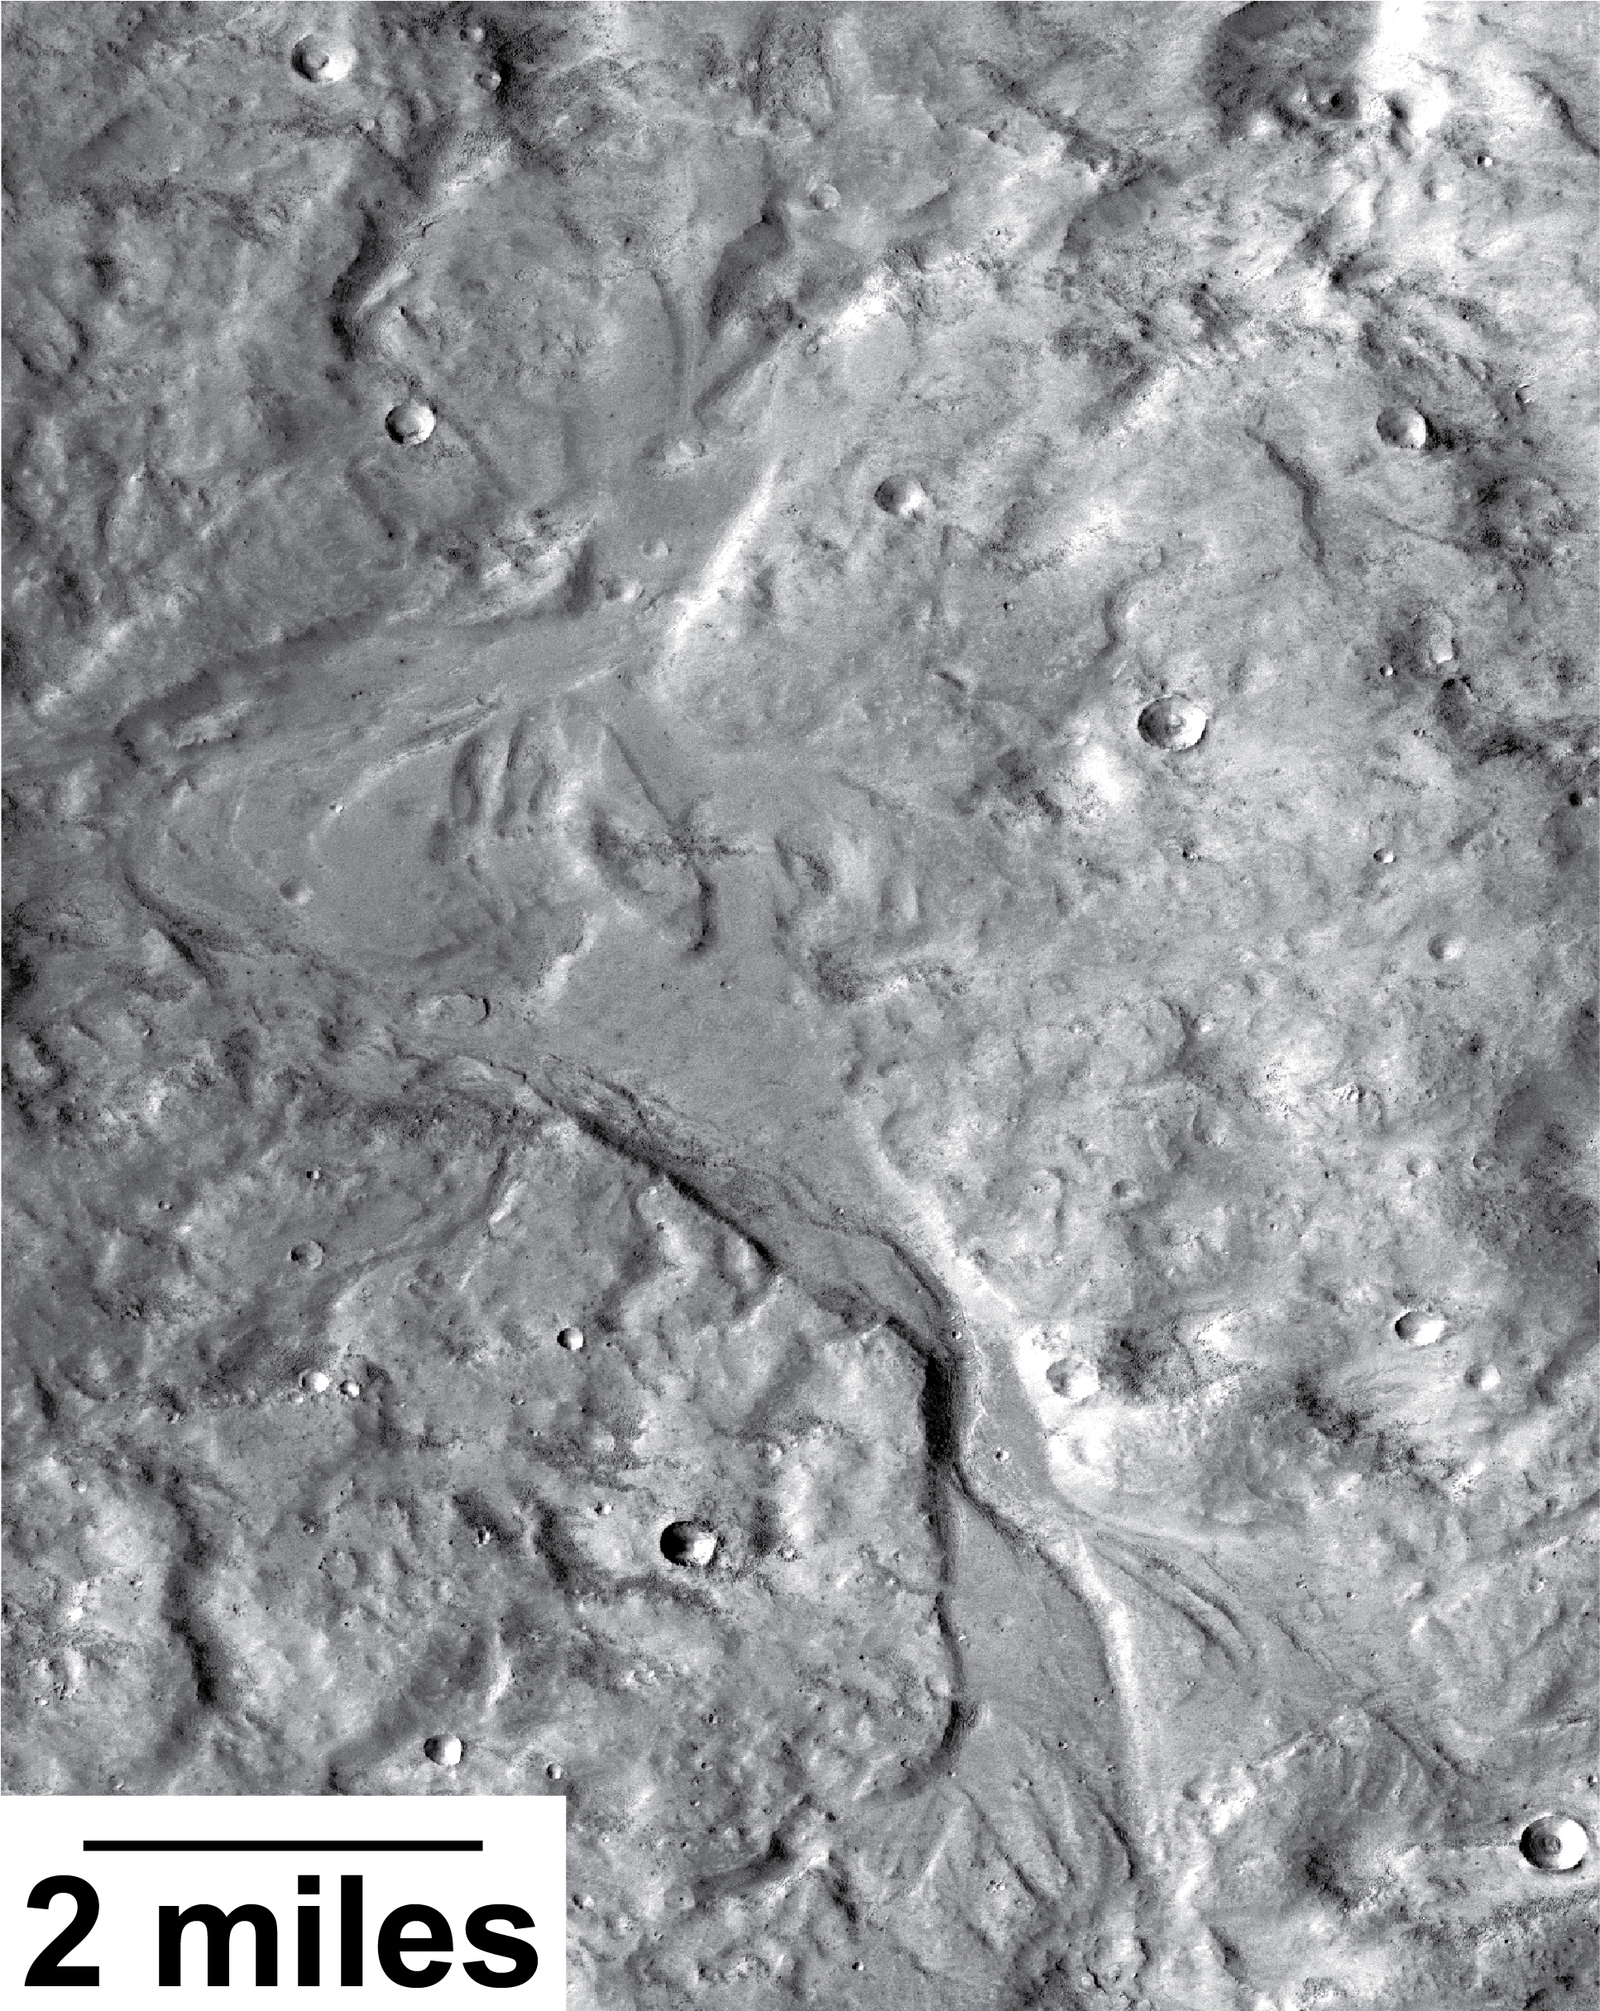 Streamlined forms in this Martian valley resulted from the outflow of a lake hundreds of millions years more recently than an era of Martian lakes previously confirmed. This image from the Context Camera on NASA's Mars Reconnaissance Orbiter covers an area in Arabia Terra about 8 miles wide.